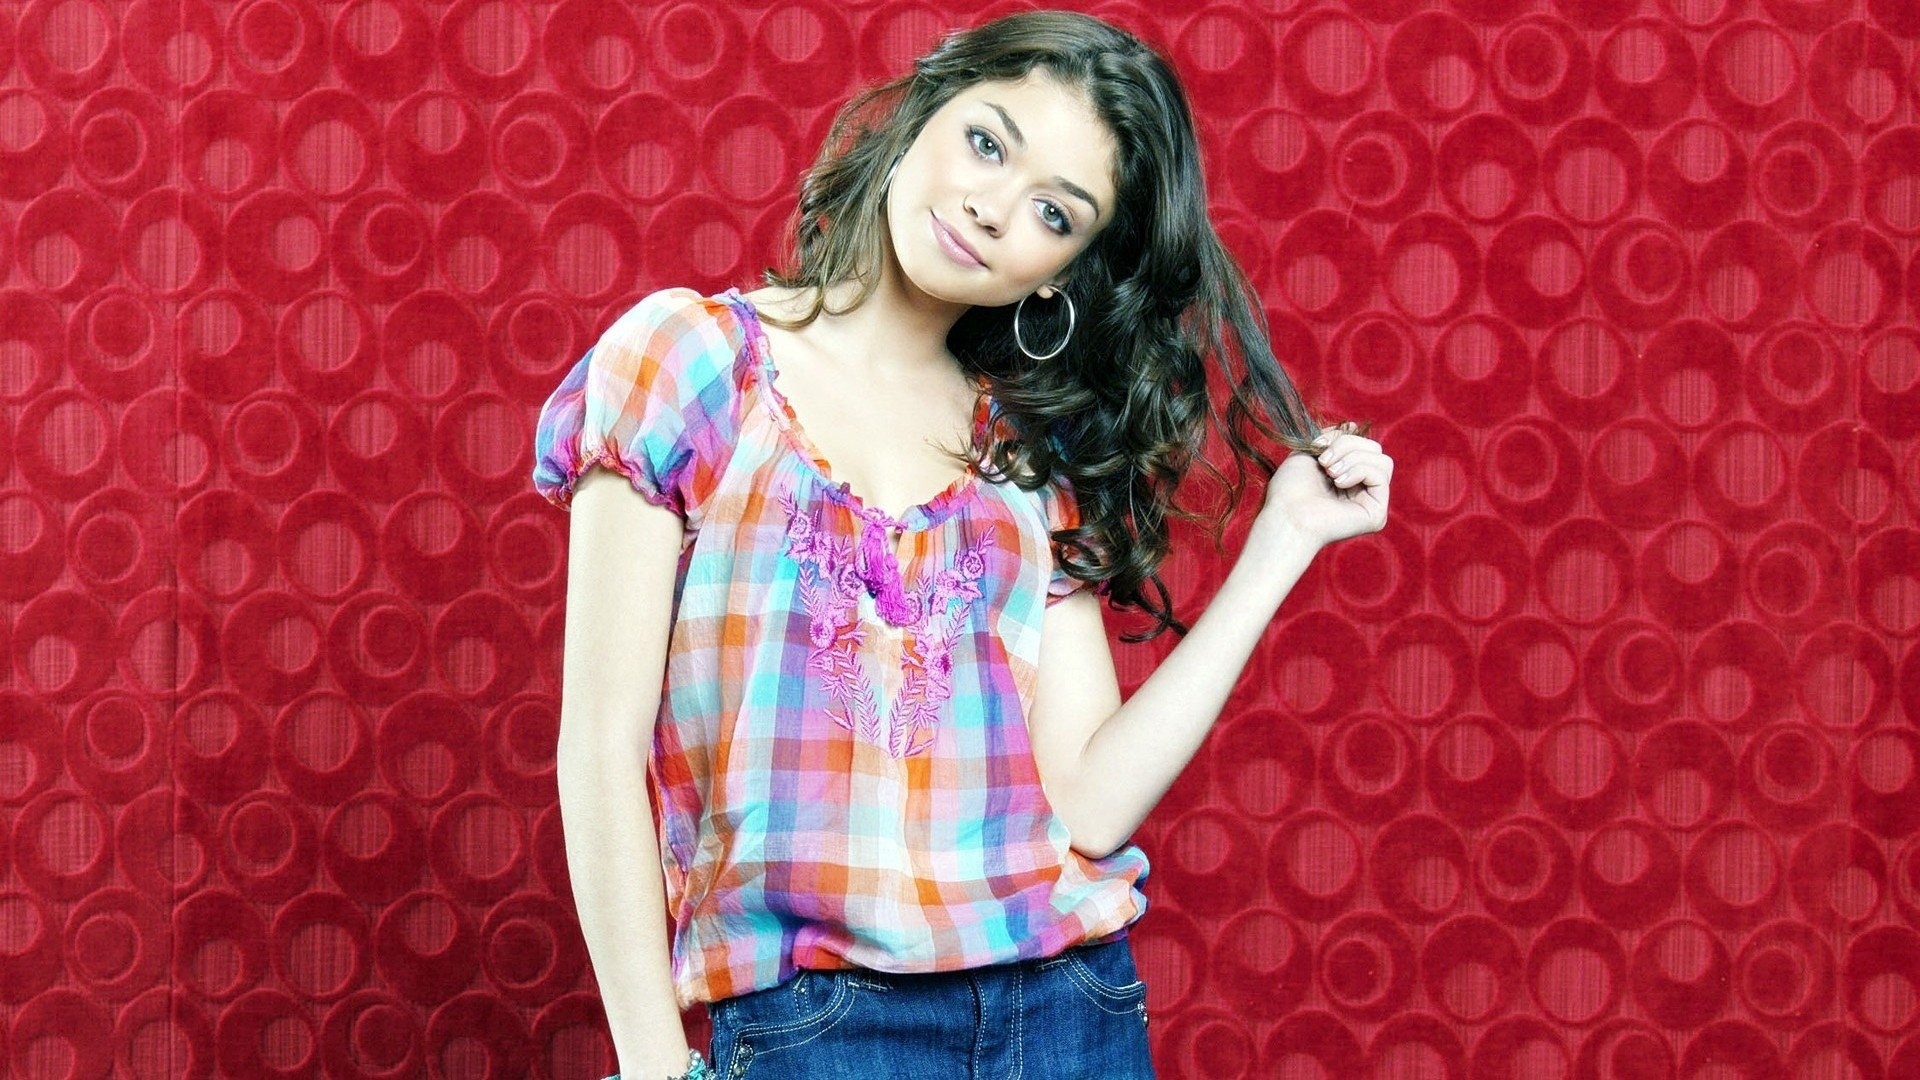 Download hd 1080p Sarah Hyland desktop background ID:349412 for free